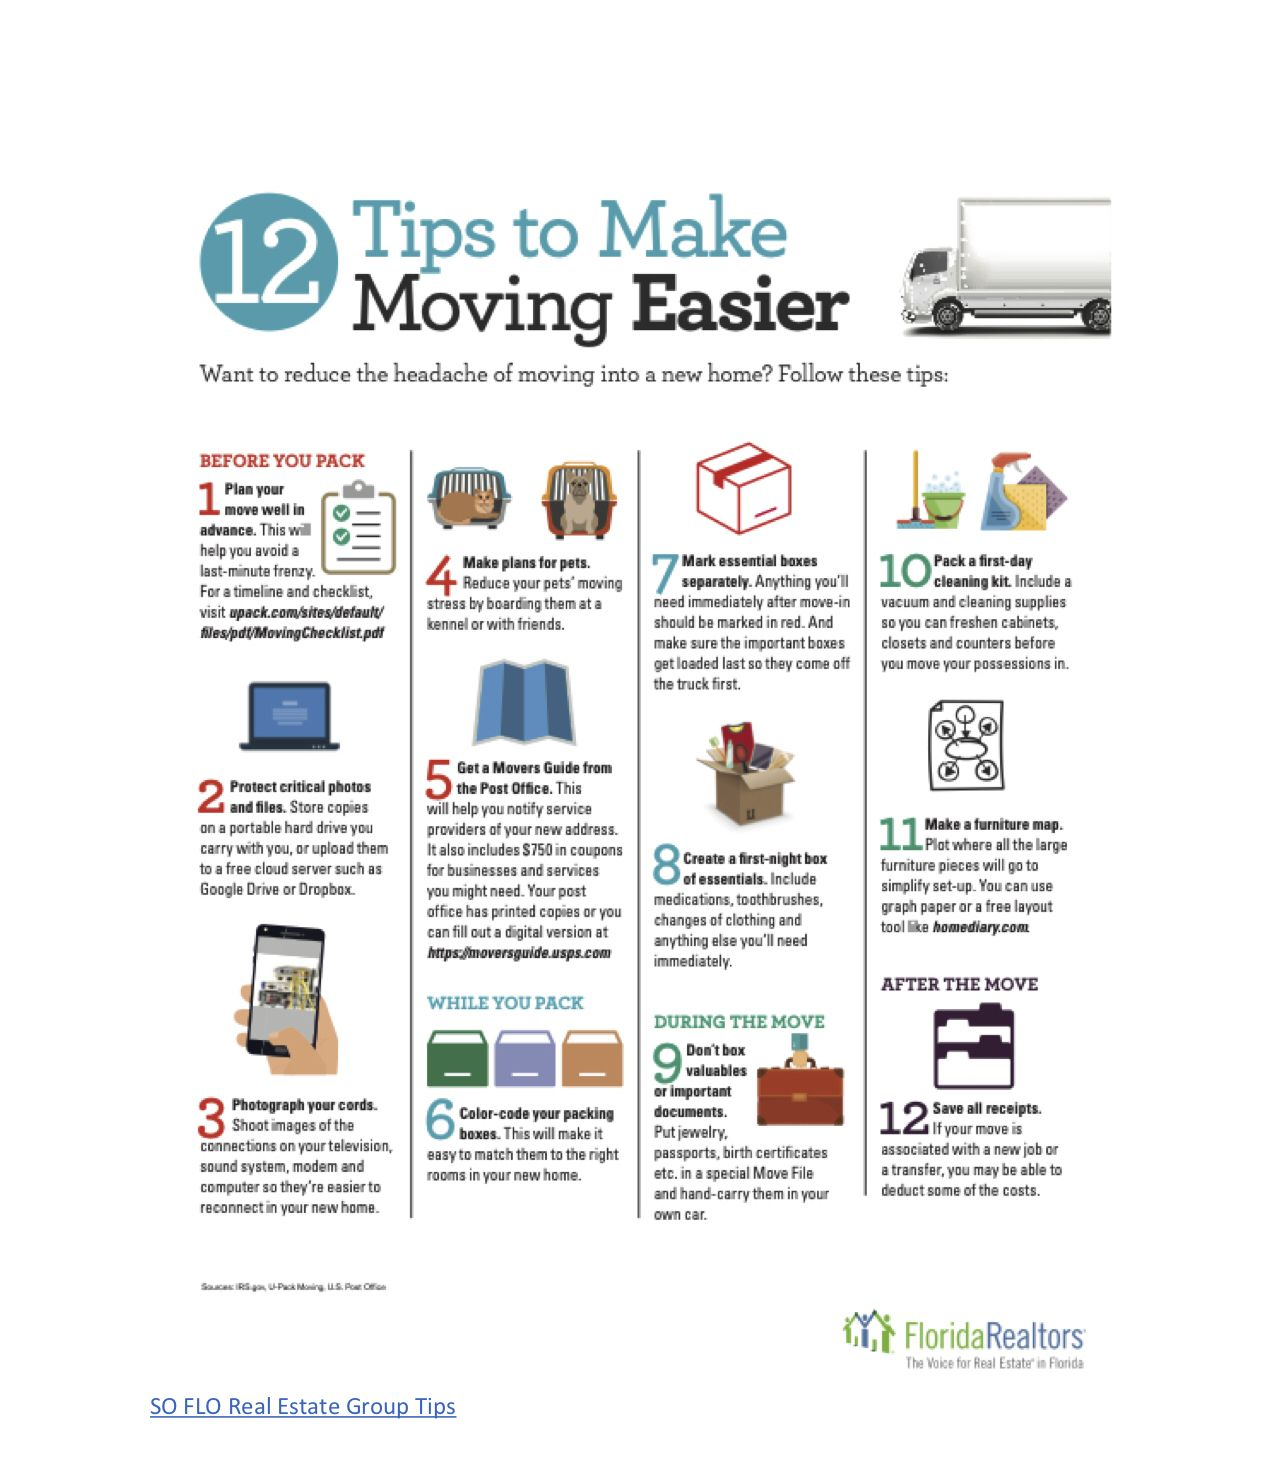 SoFloRealEstateGroup Top 12 Tips of the Week How to